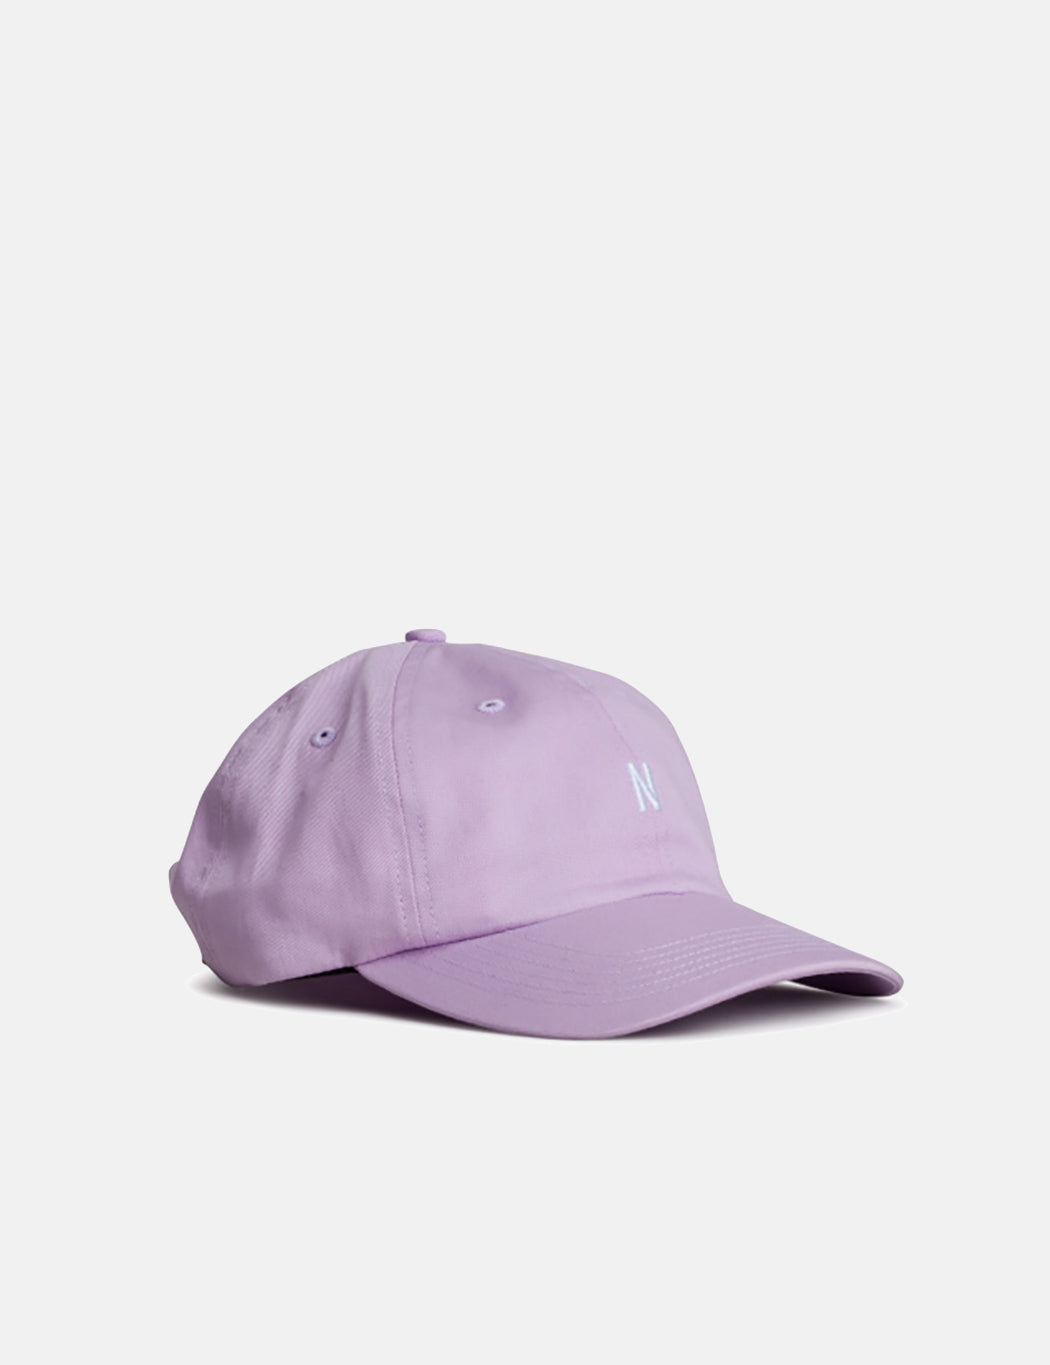 Norse Projects Light Twill Sports Cap - Heather Purple